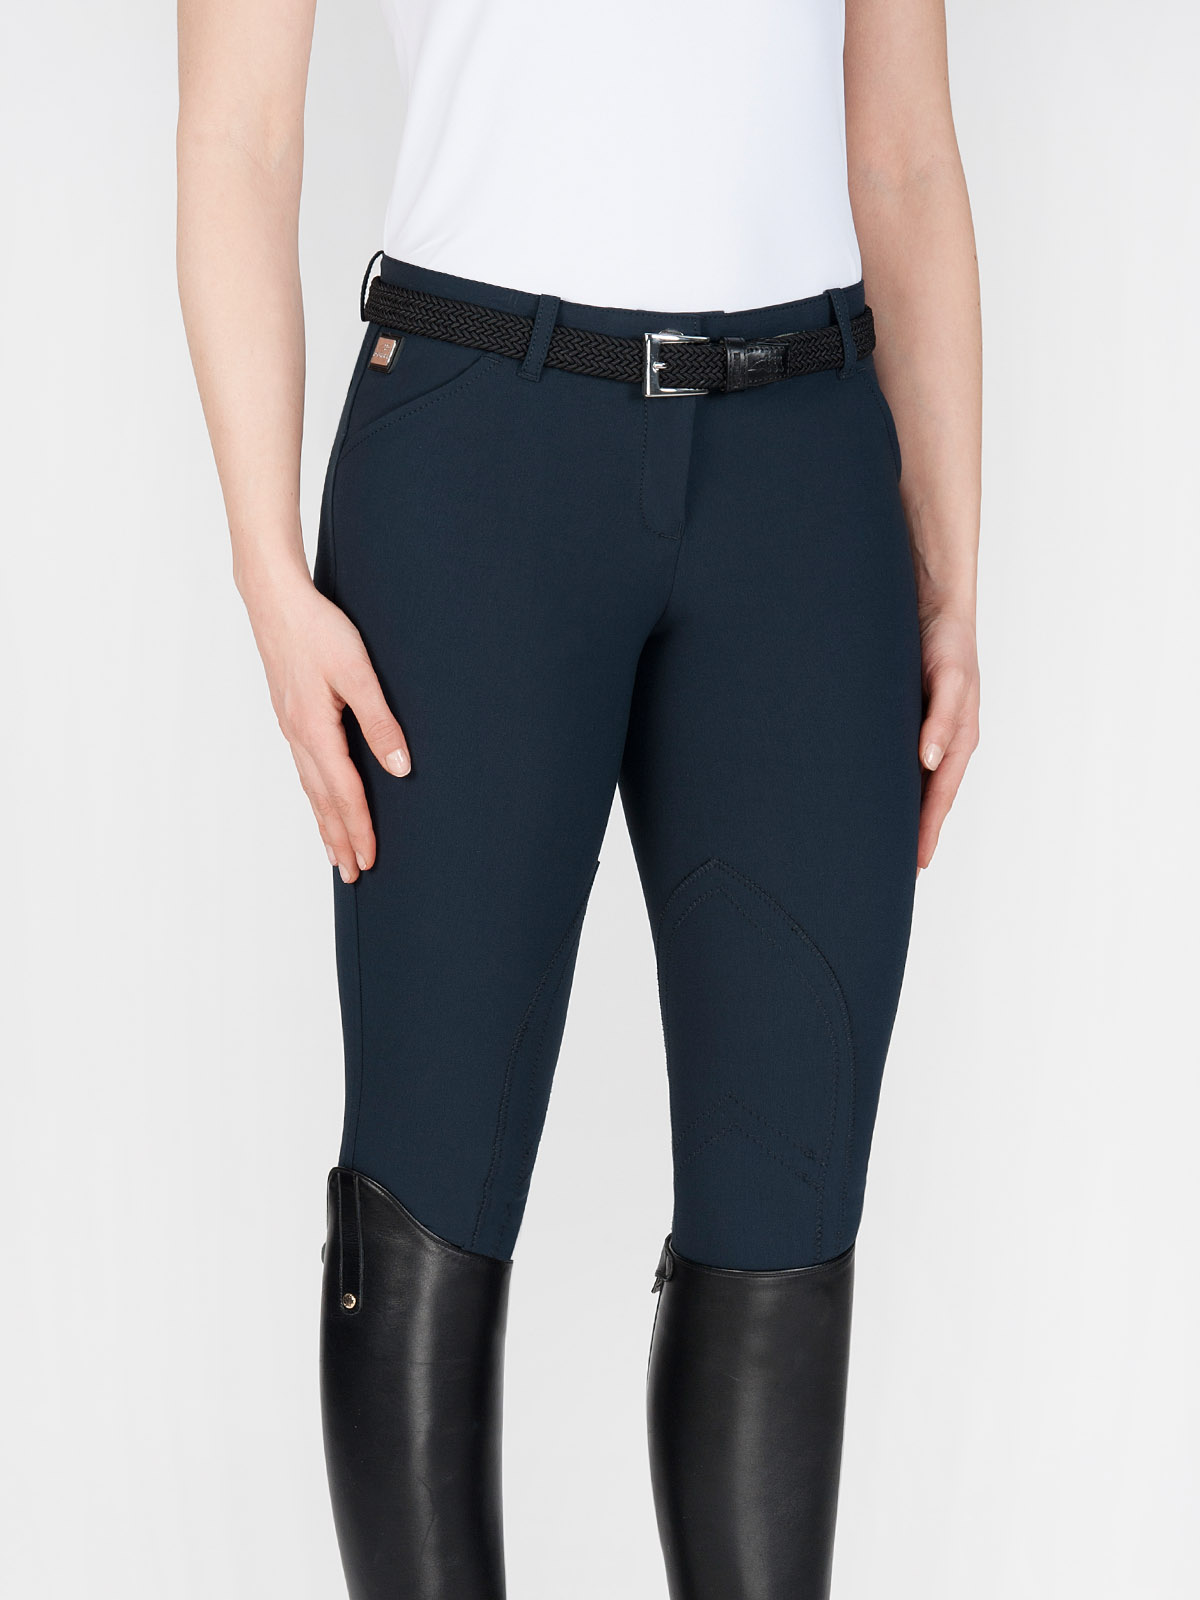 BOSTON Women's riding breeches with knee patch in navy blue